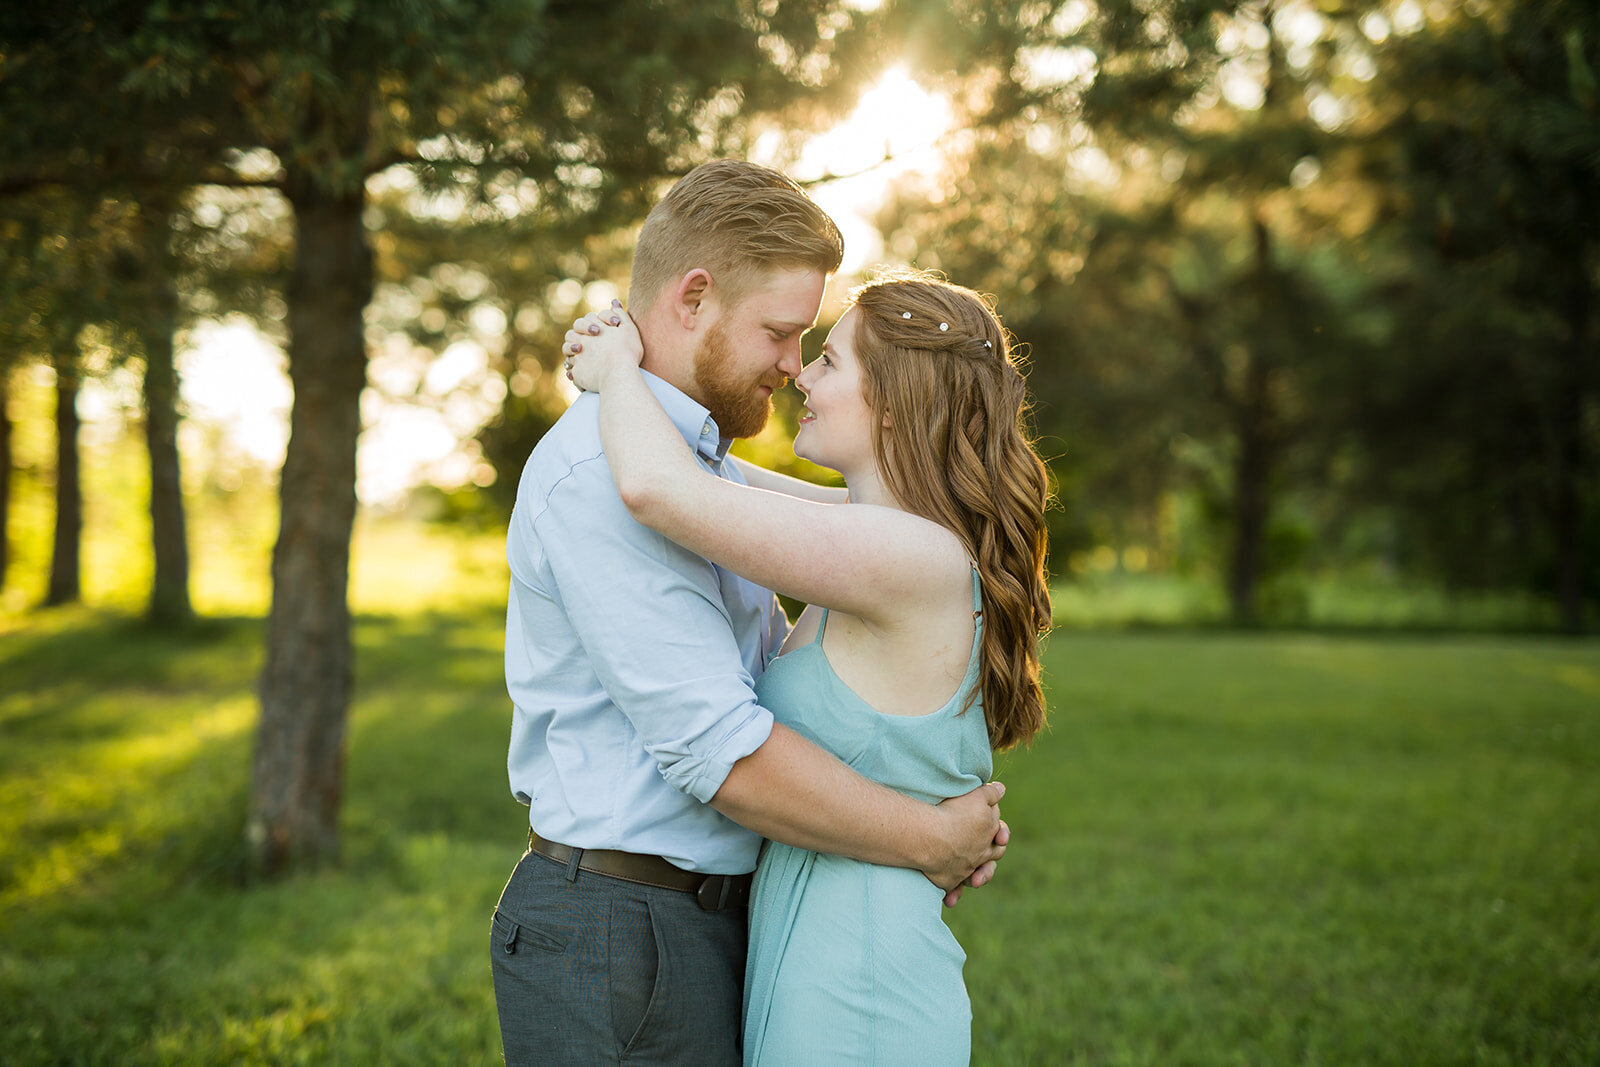 Brynn-Wheatley-Photography-2020-Mark-Sarah-Engagement-LG-6_websize